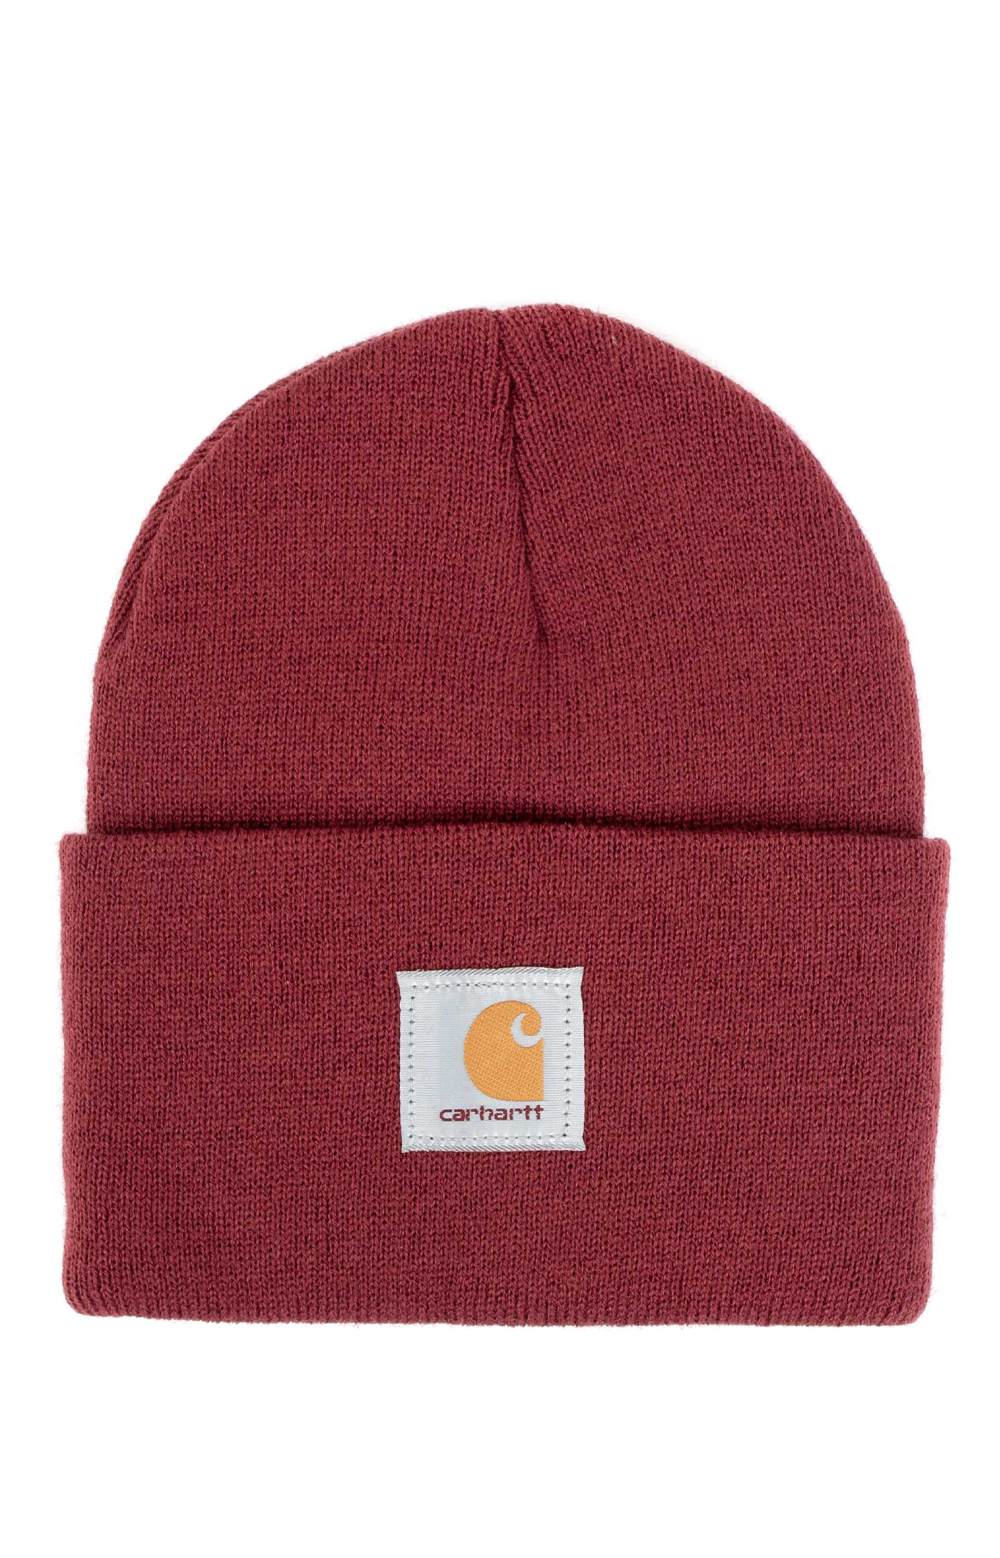 Carhartt, Acrylic Watch Hat - Cherry Stone